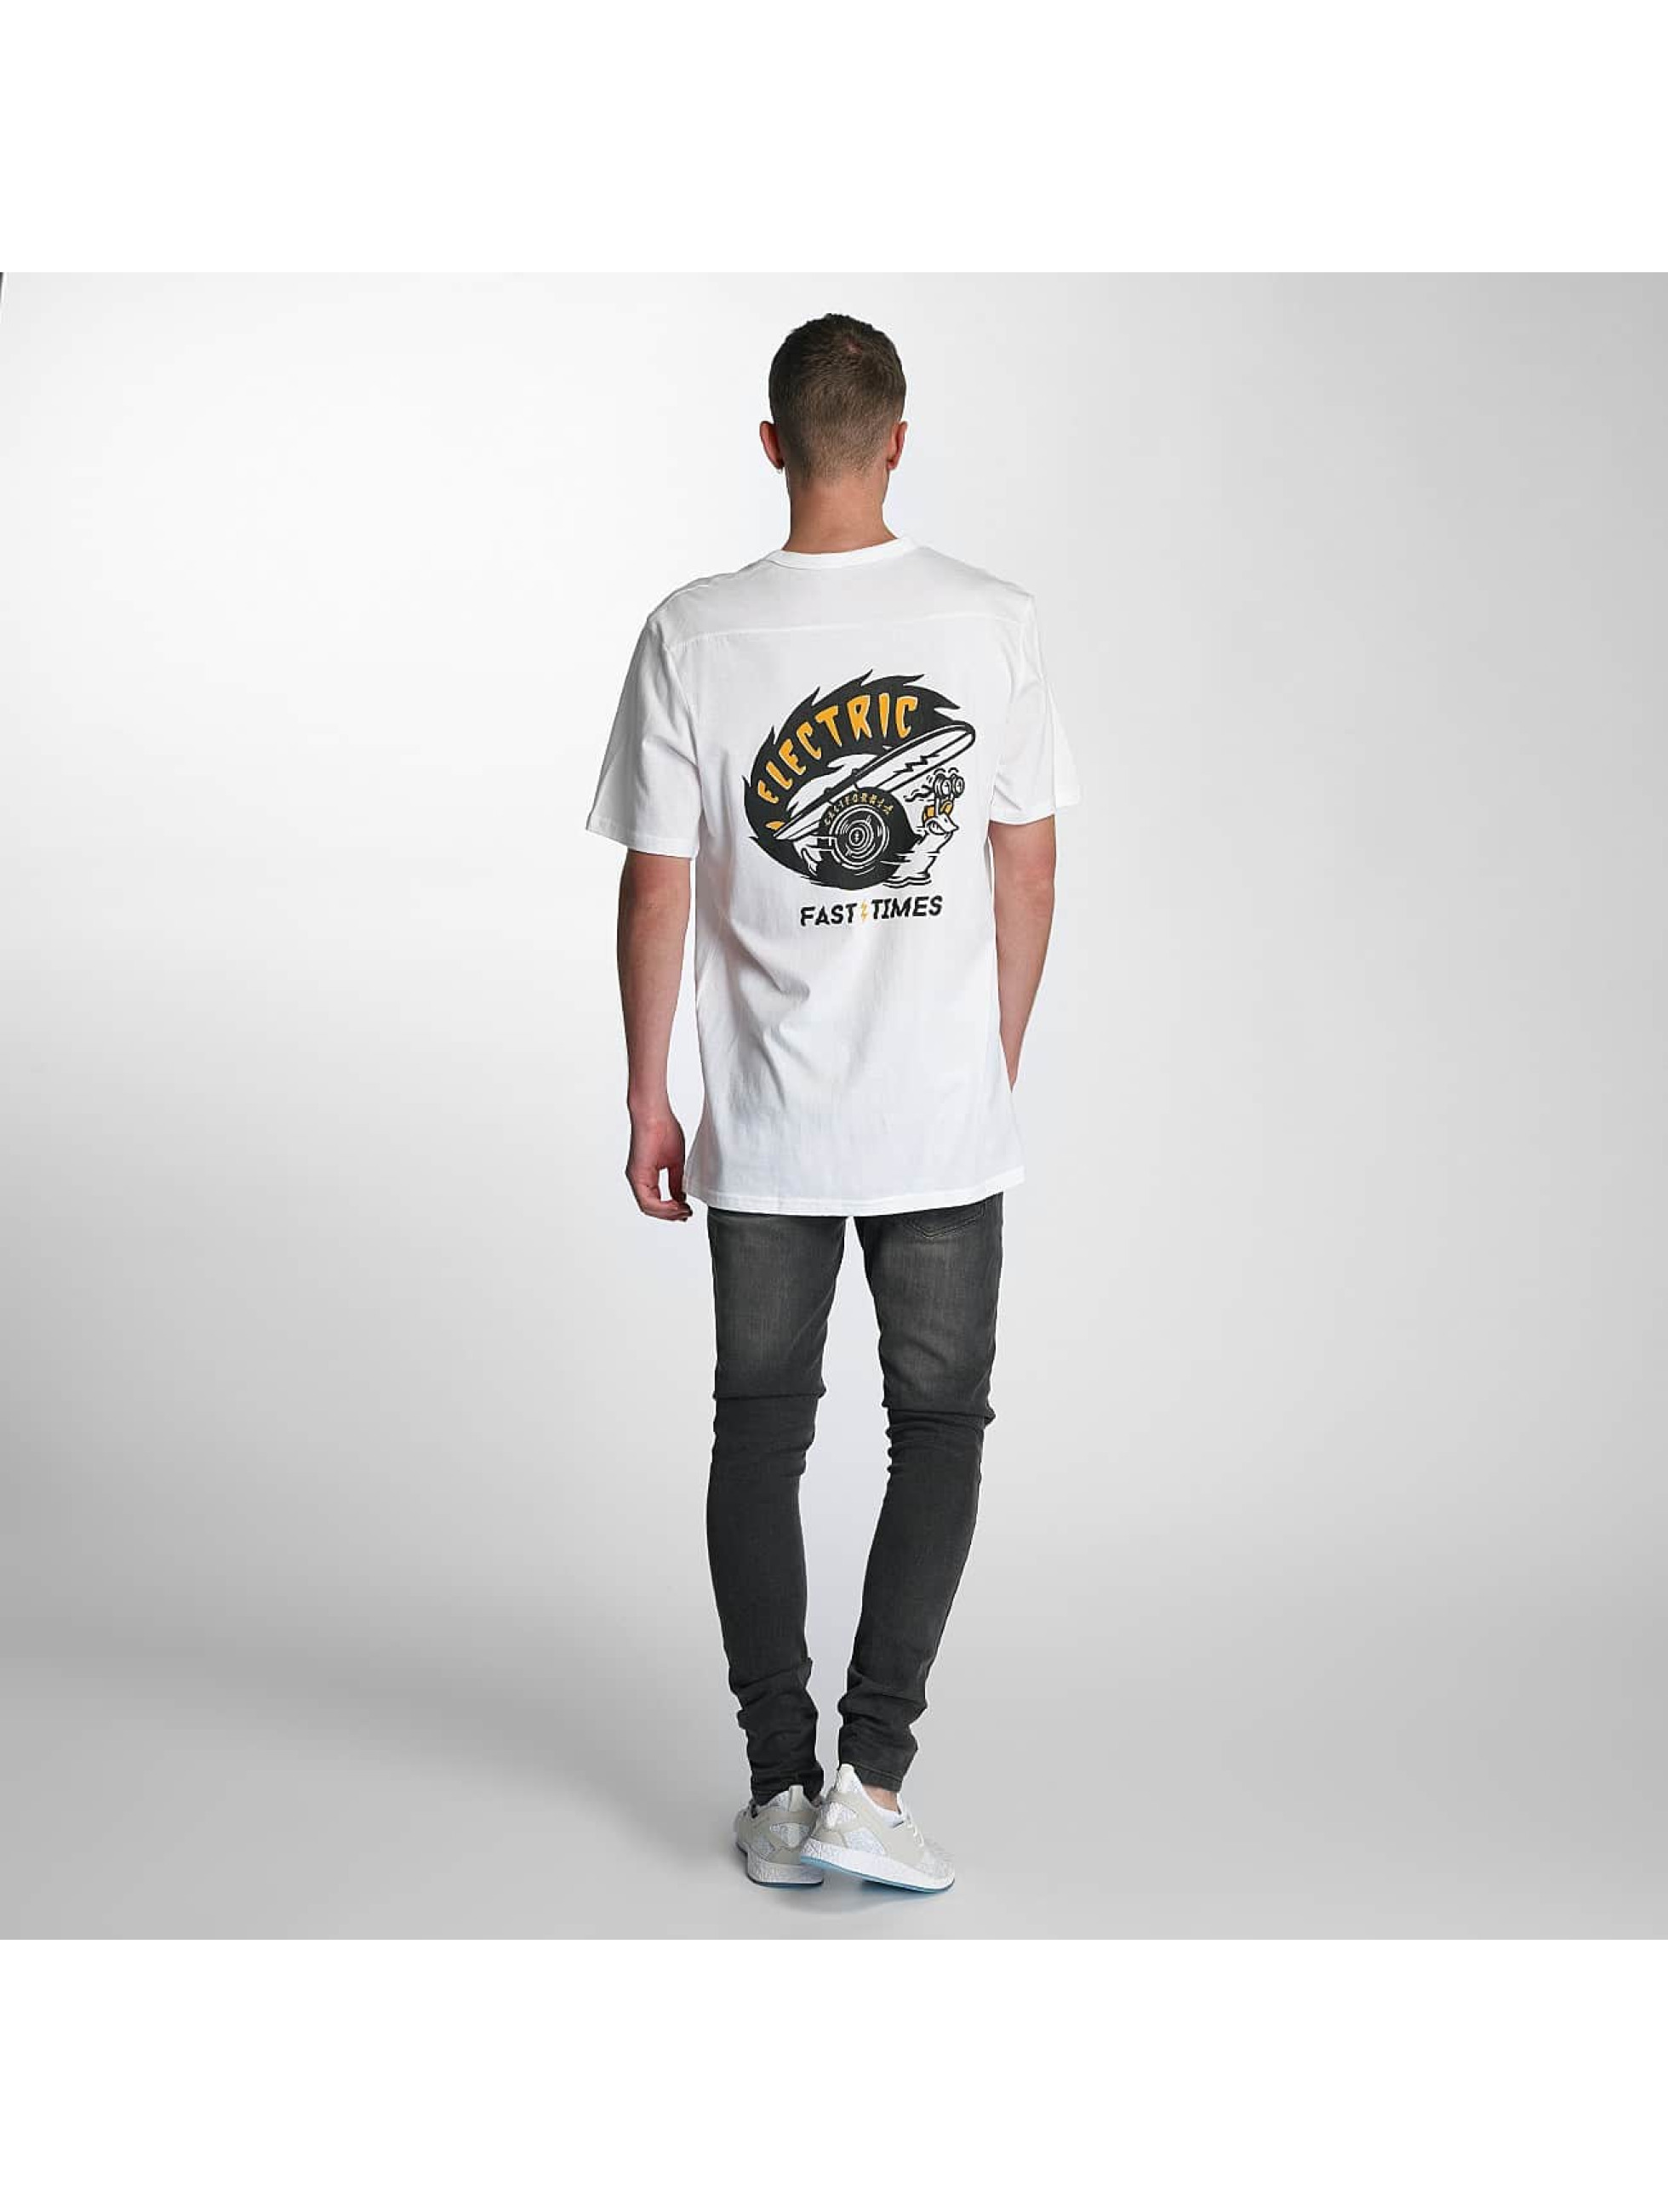 Electric T-Shirt Fast Time Pocket white